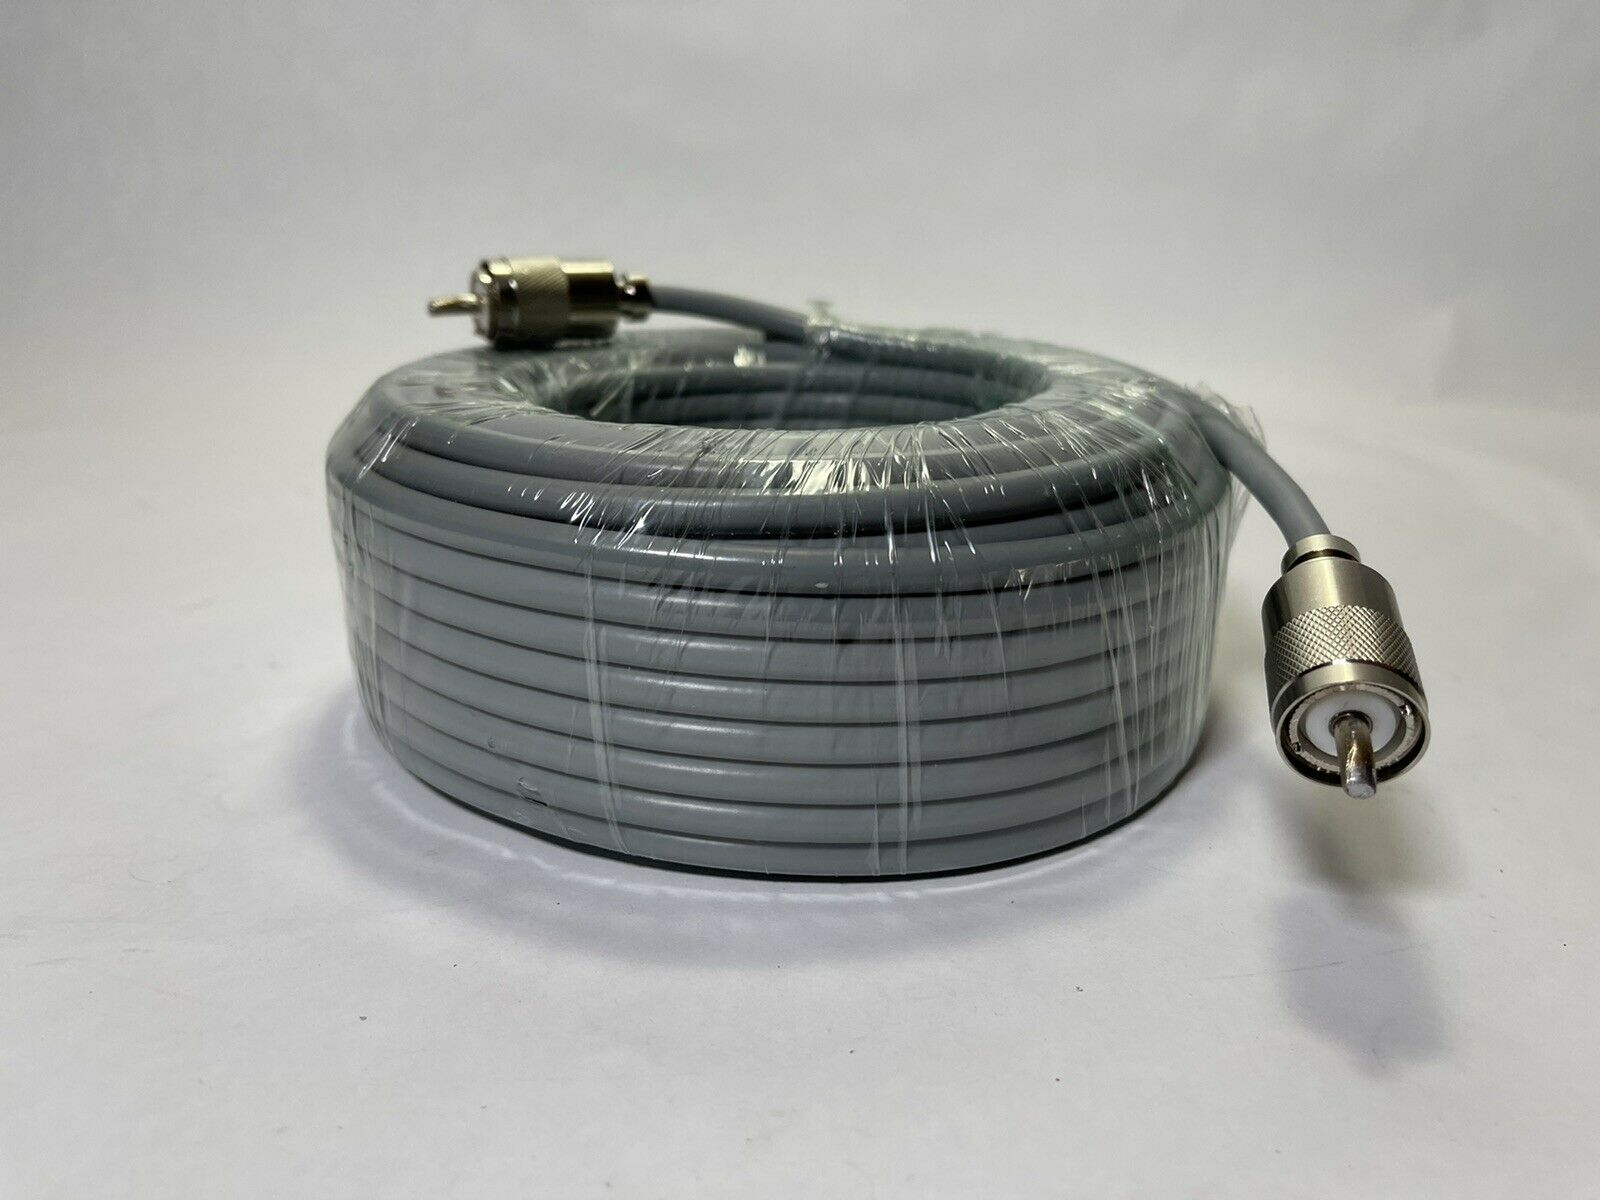 75FT RG-8x COAX COAXIAL CABLE LOW LOSS w/ MALE PL-259 CB HAM RADIO RG8 NEW!. Available Now for 42.95